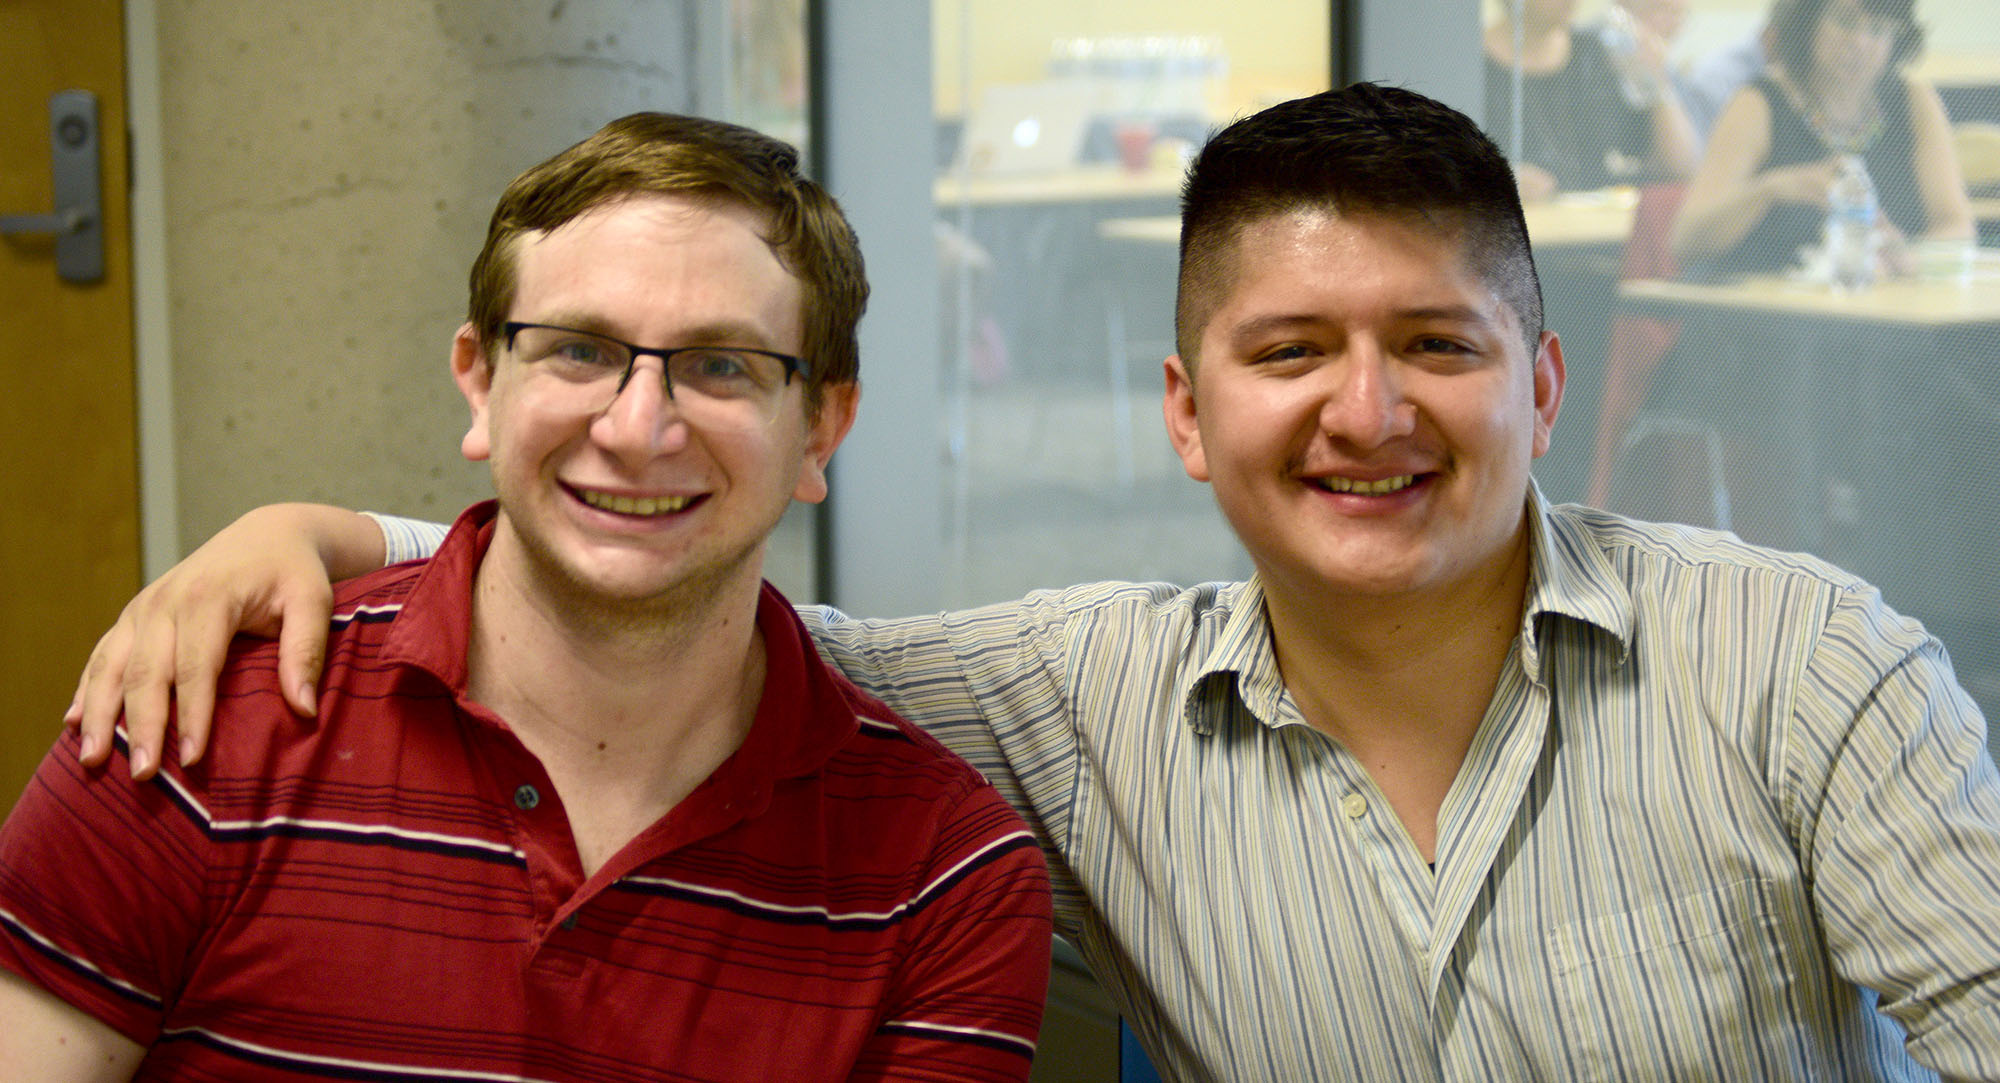 Two Graduate Fellows smile together, facing the camera